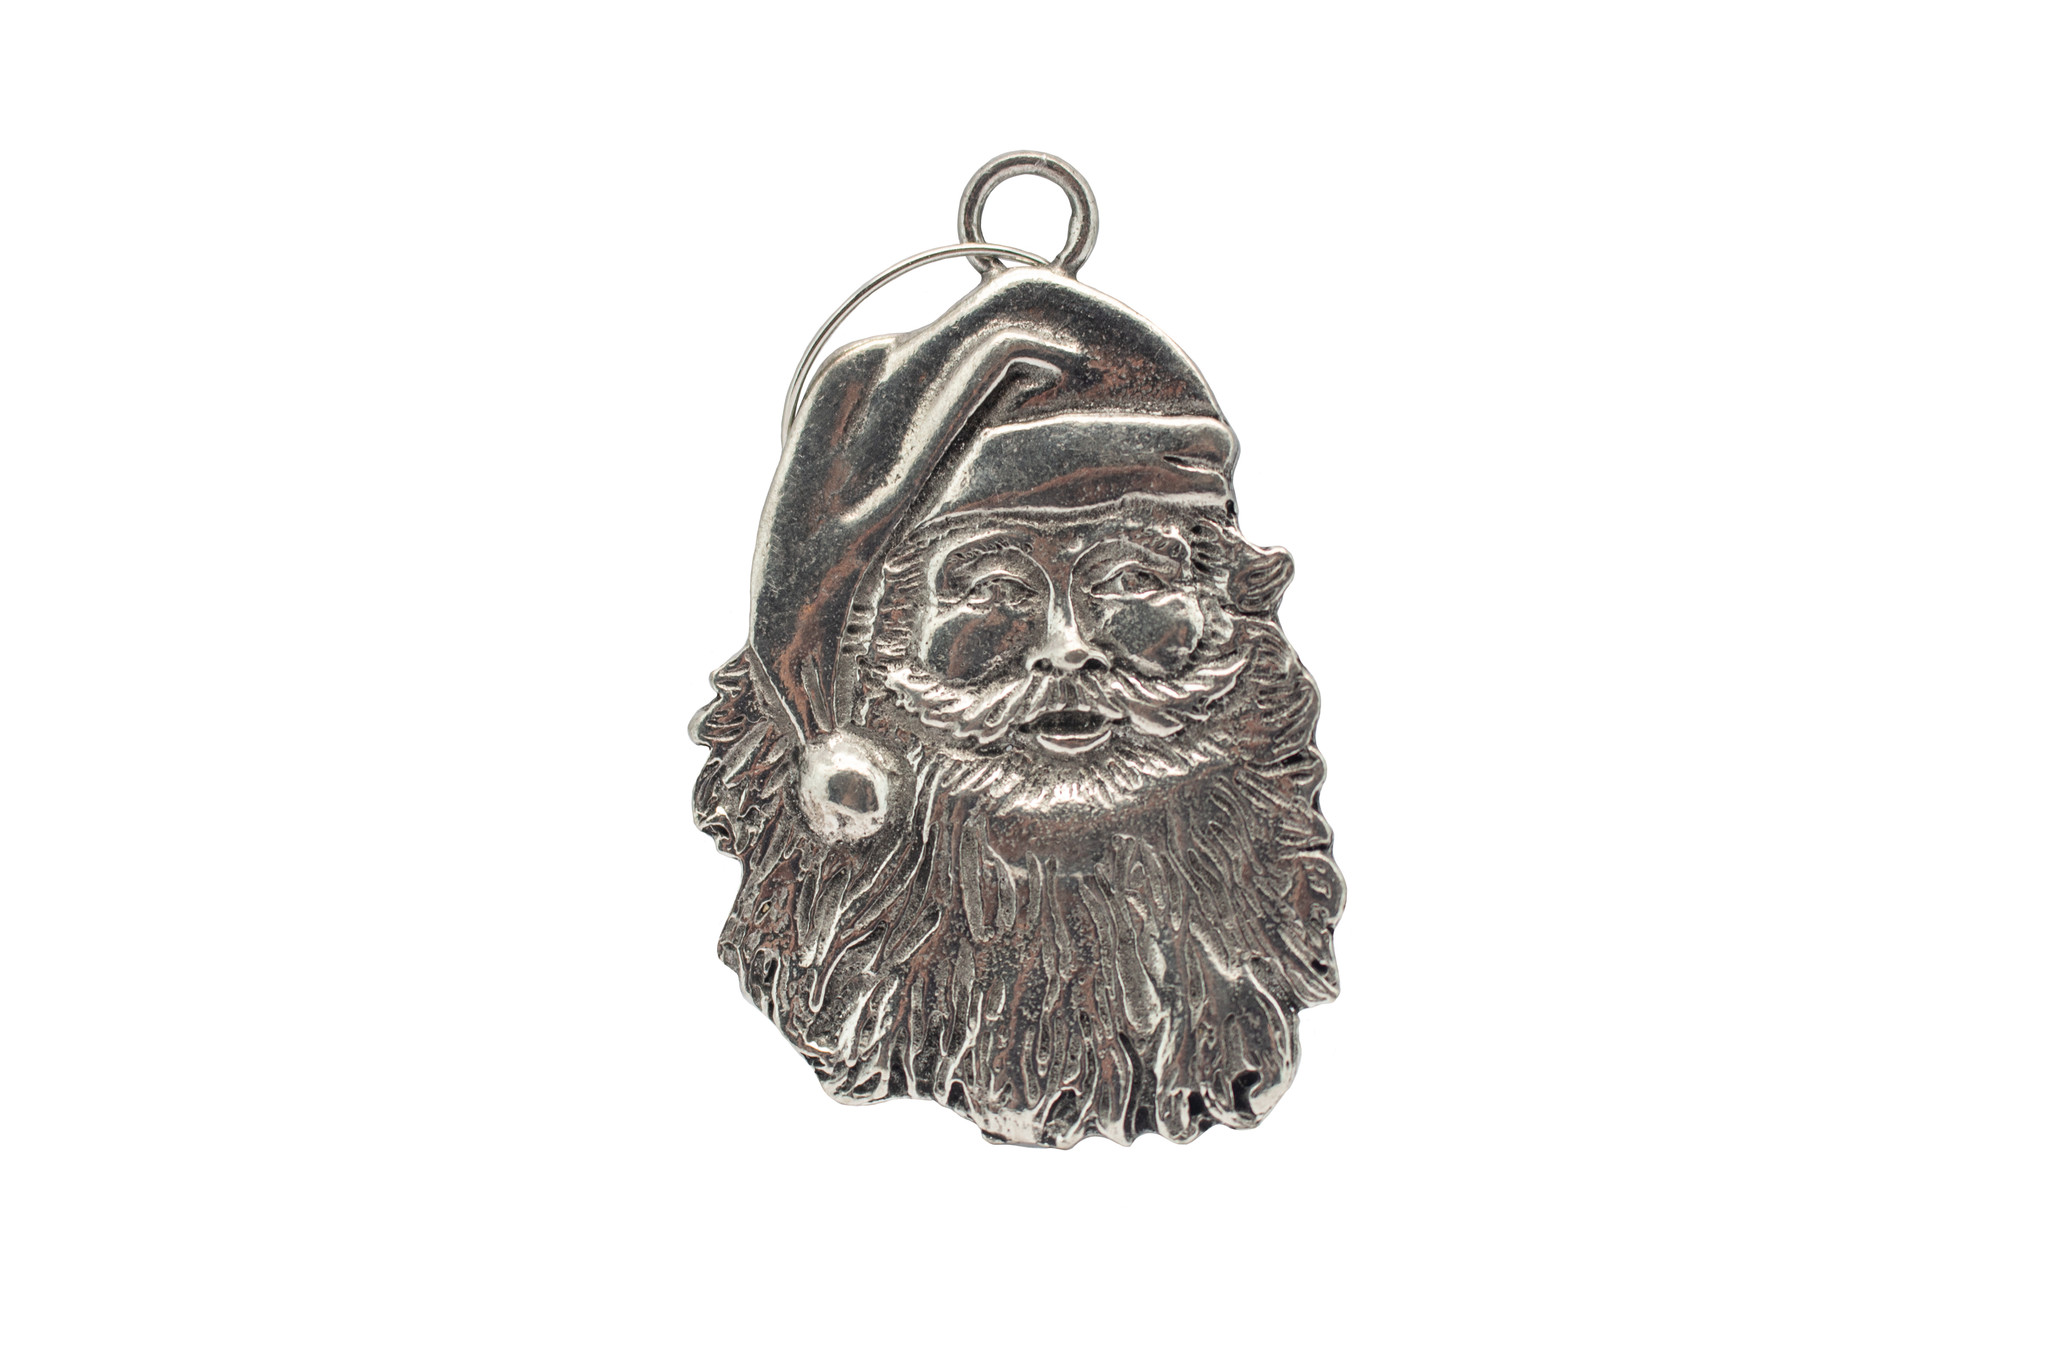 DTR Hanging Christmas ornament Santa Claus Smiling